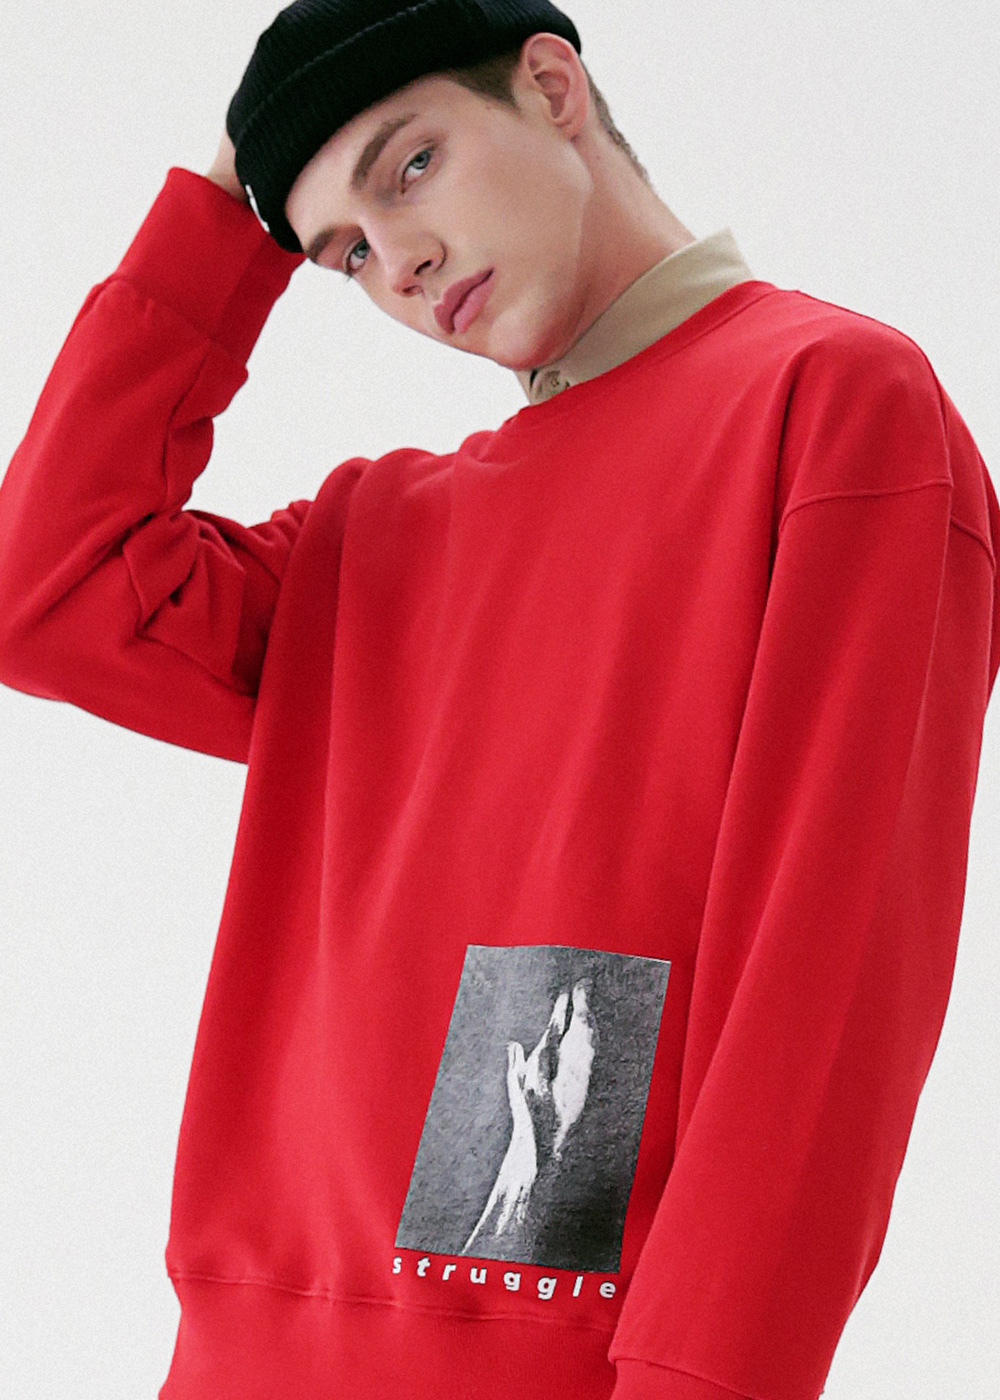 HAND IN SAND CREWNECK MFVCR003-RD